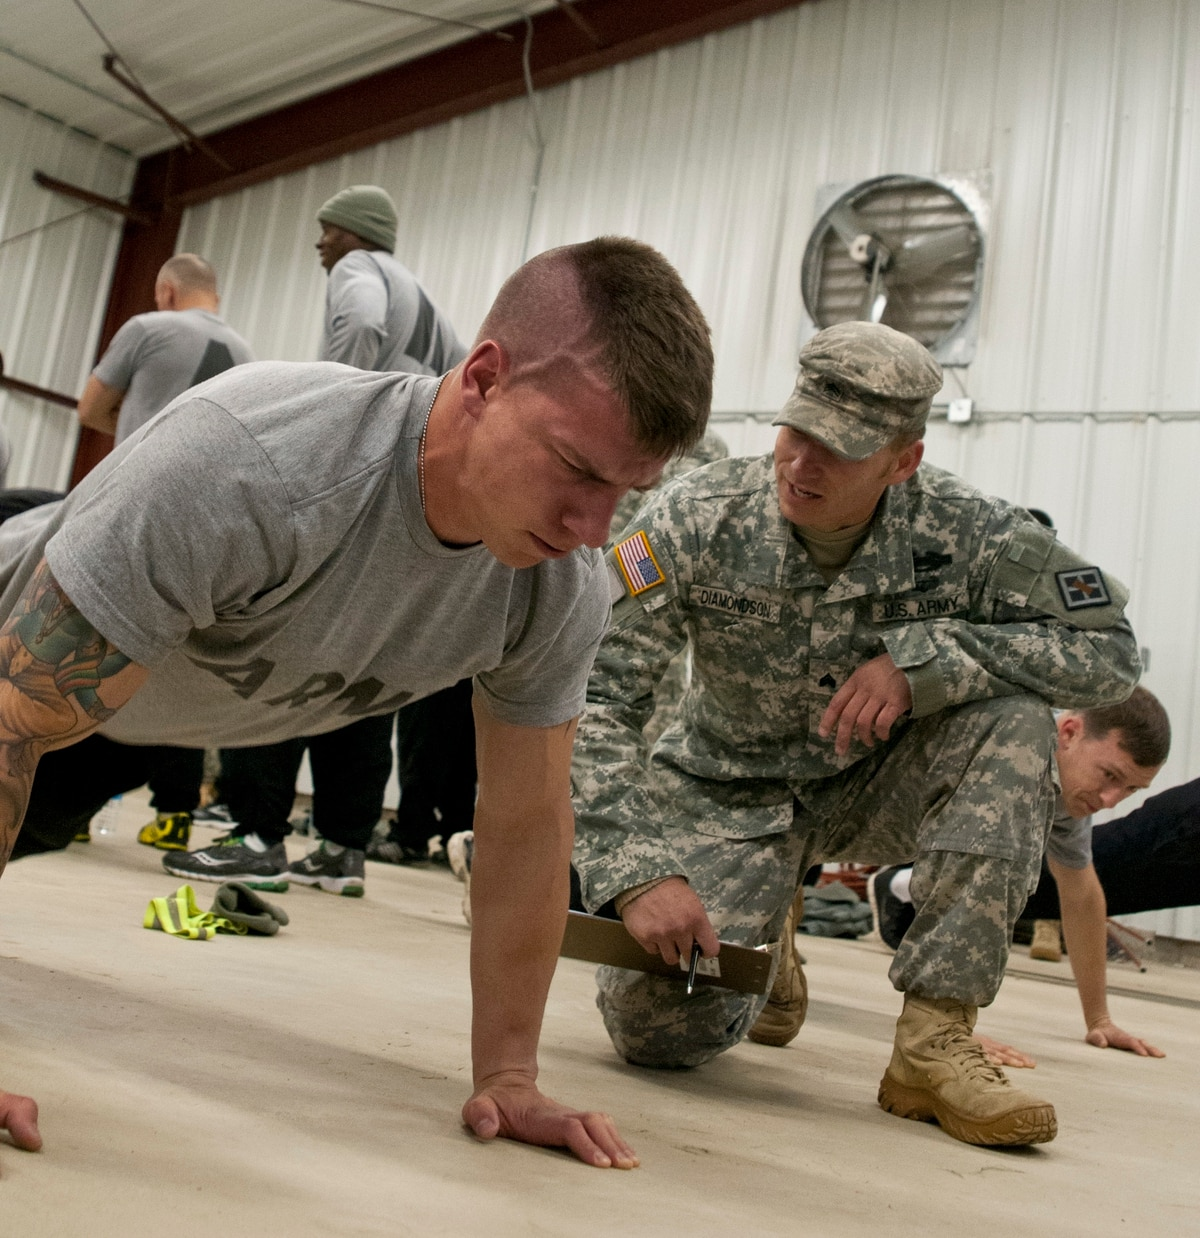 Armys new fitness tests new details emerge from leadership nvjuhfo Images